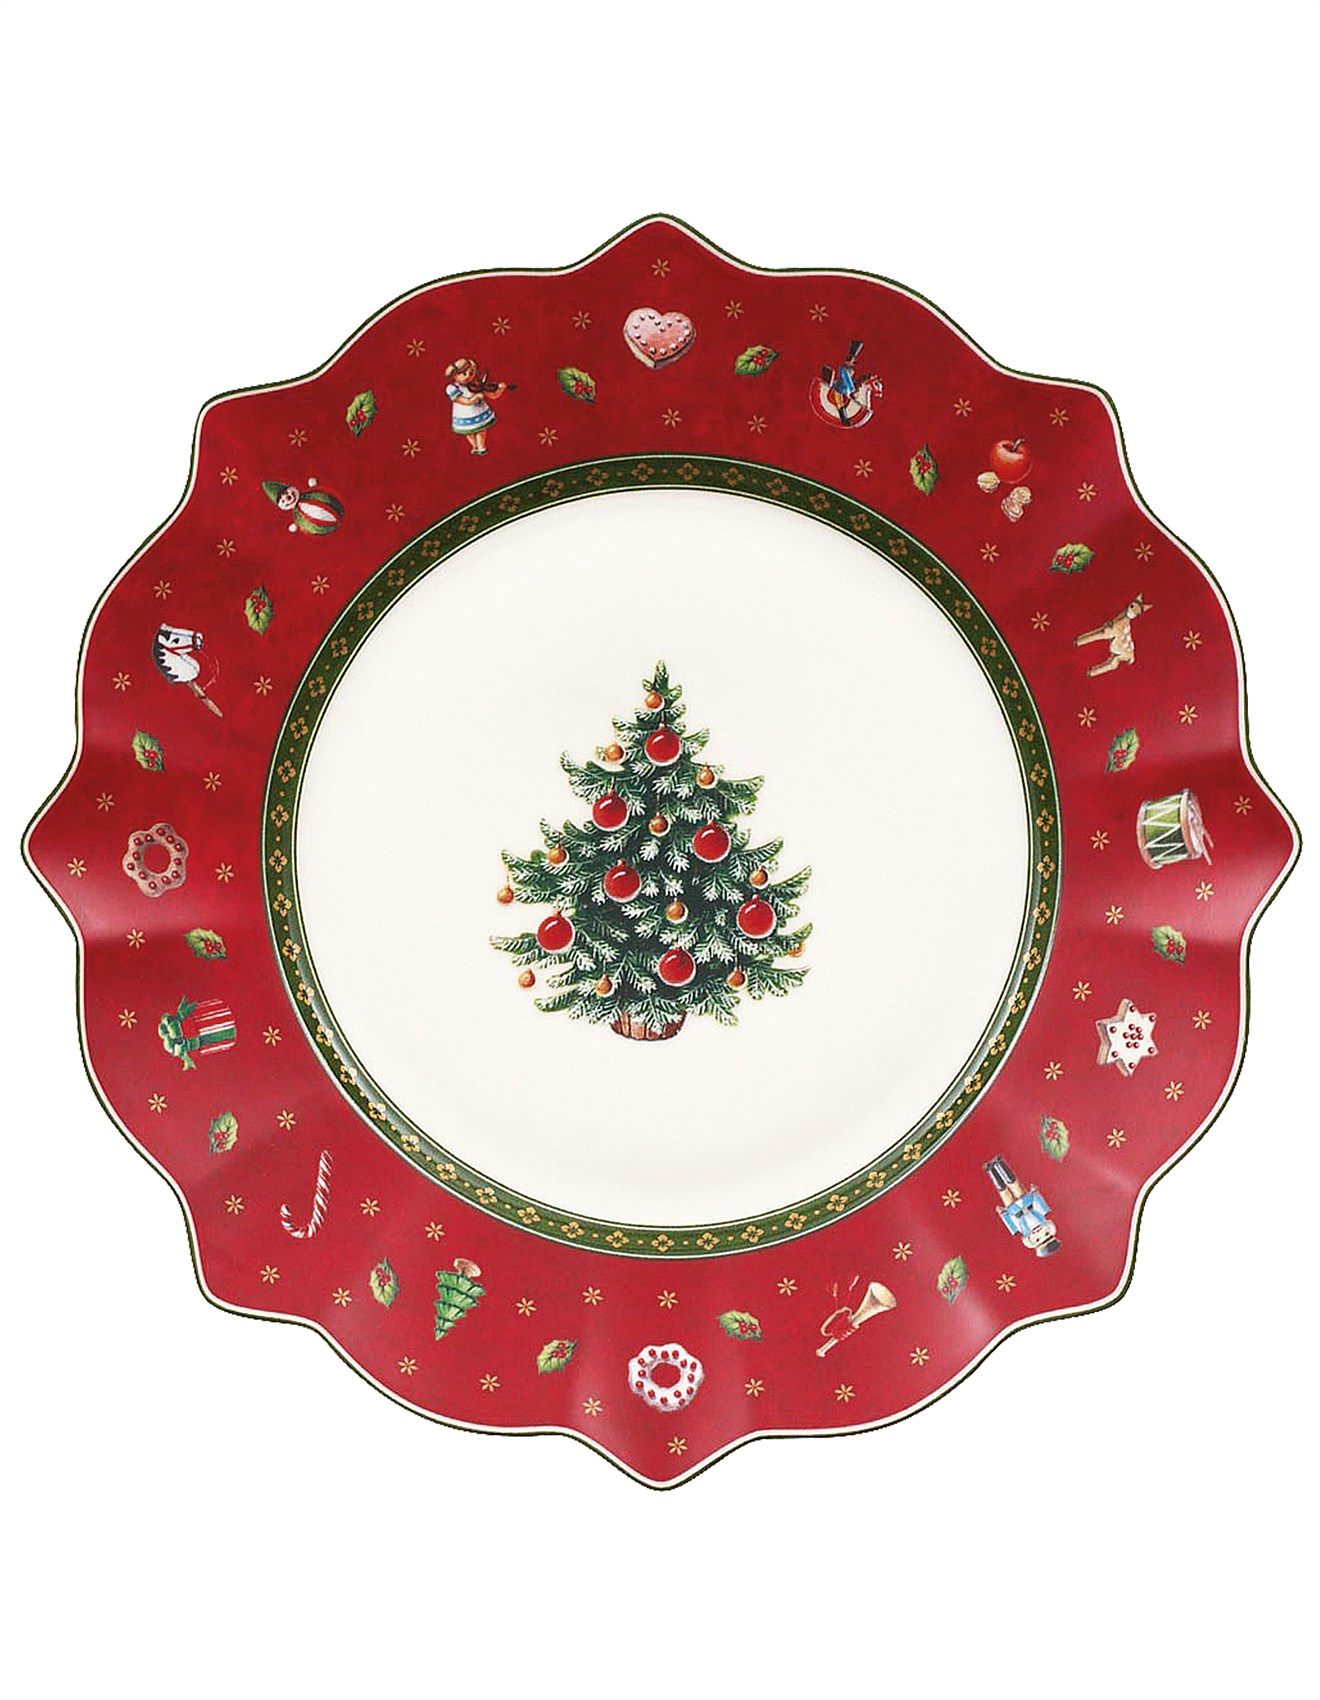 shop christmas trees decorations more online david jones toy 39 s delight salad plate red. Black Bedroom Furniture Sets. Home Design Ideas